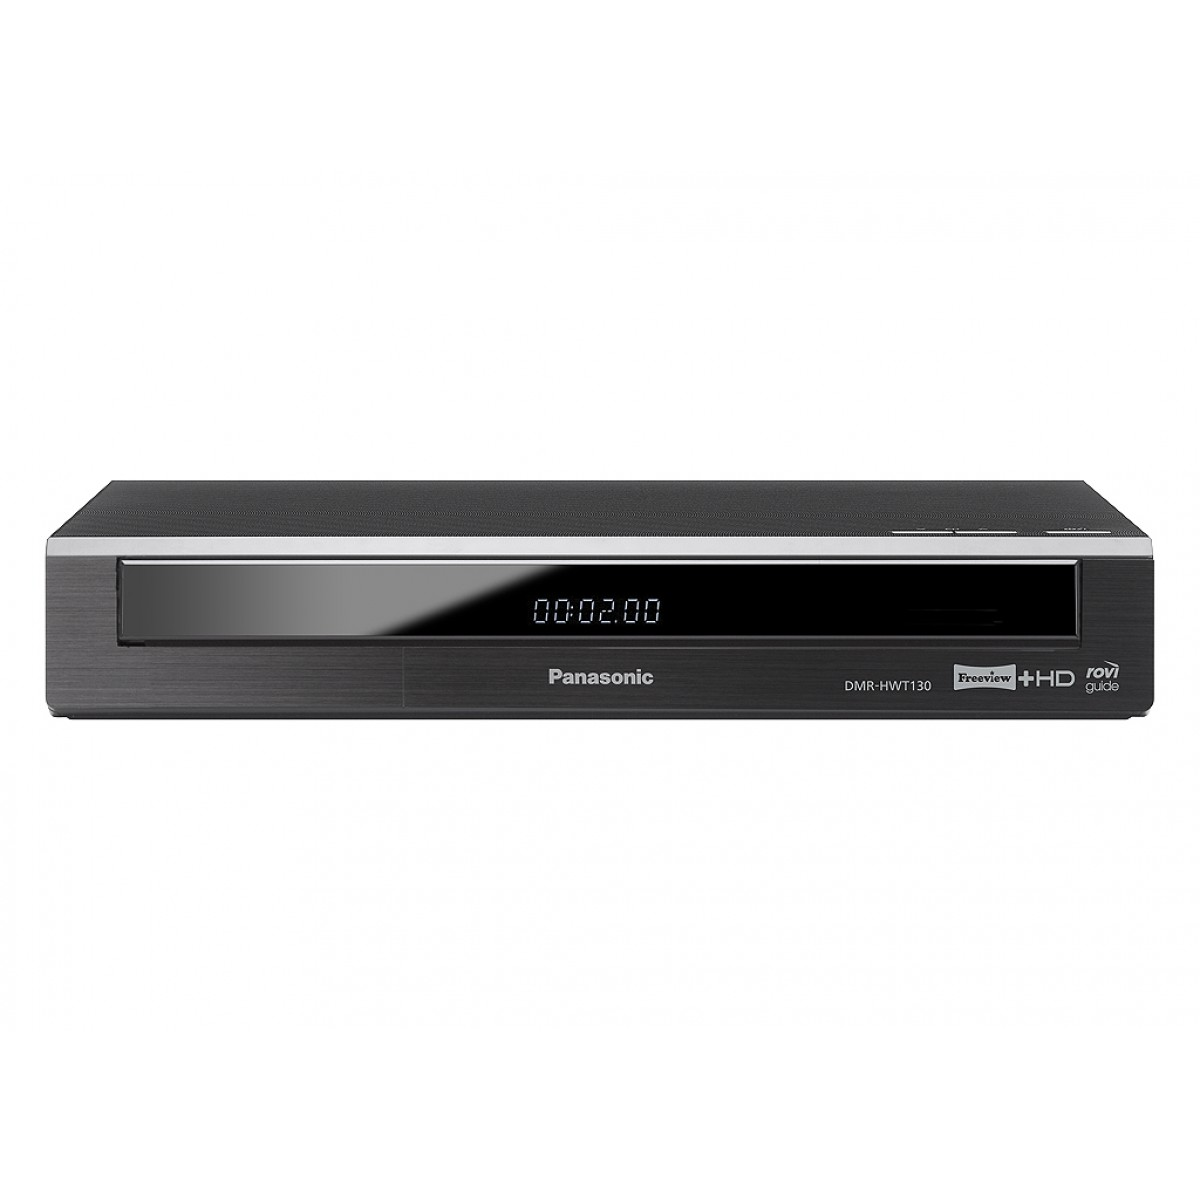 panasonic dmrhwt130eb9 500gb hdd recorder freeview hd. Black Bedroom Furniture Sets. Home Design Ideas